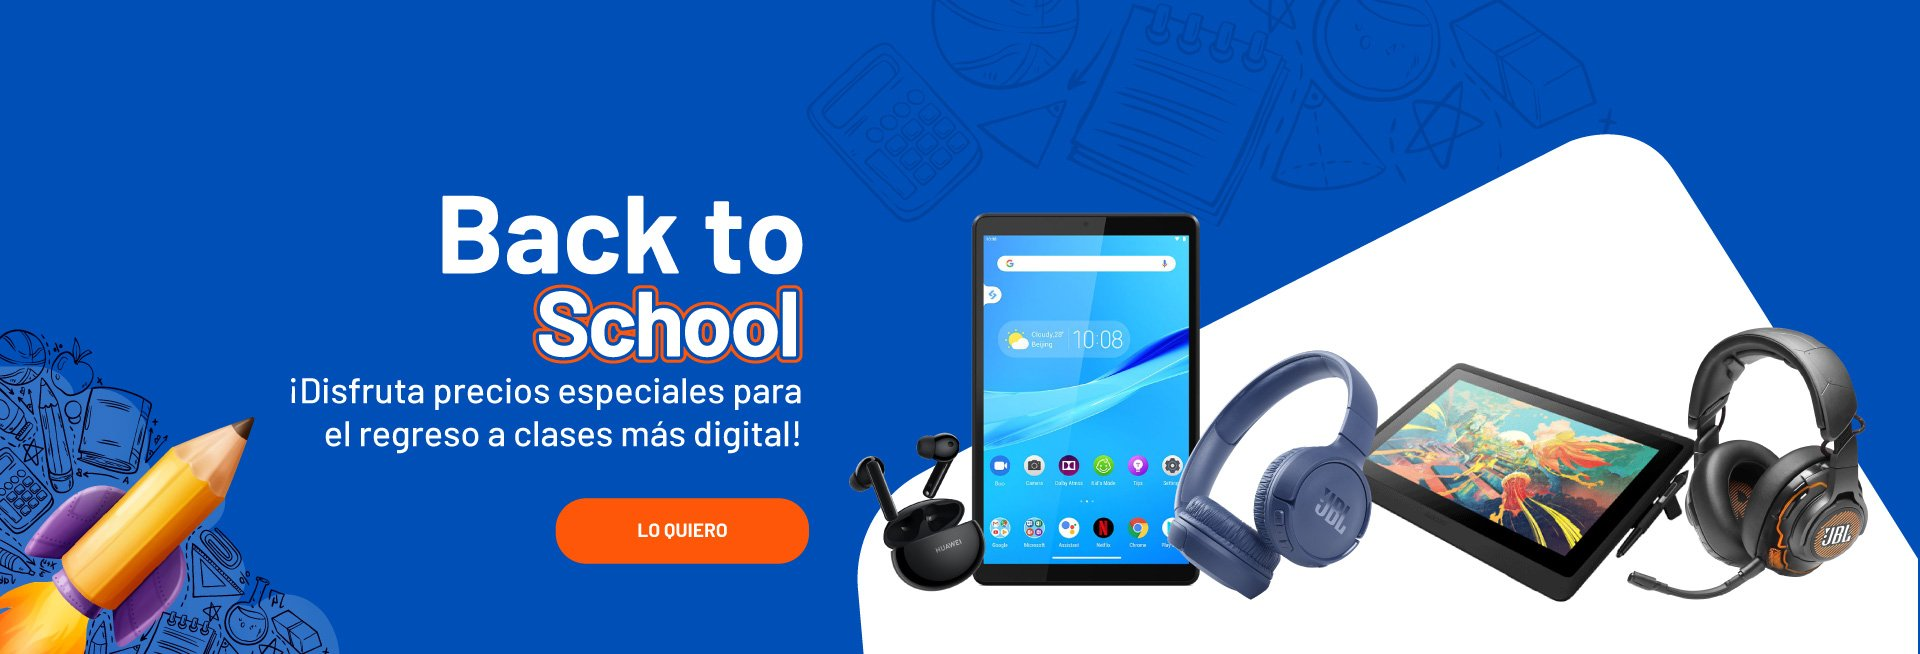 Back to School; regreso a clases